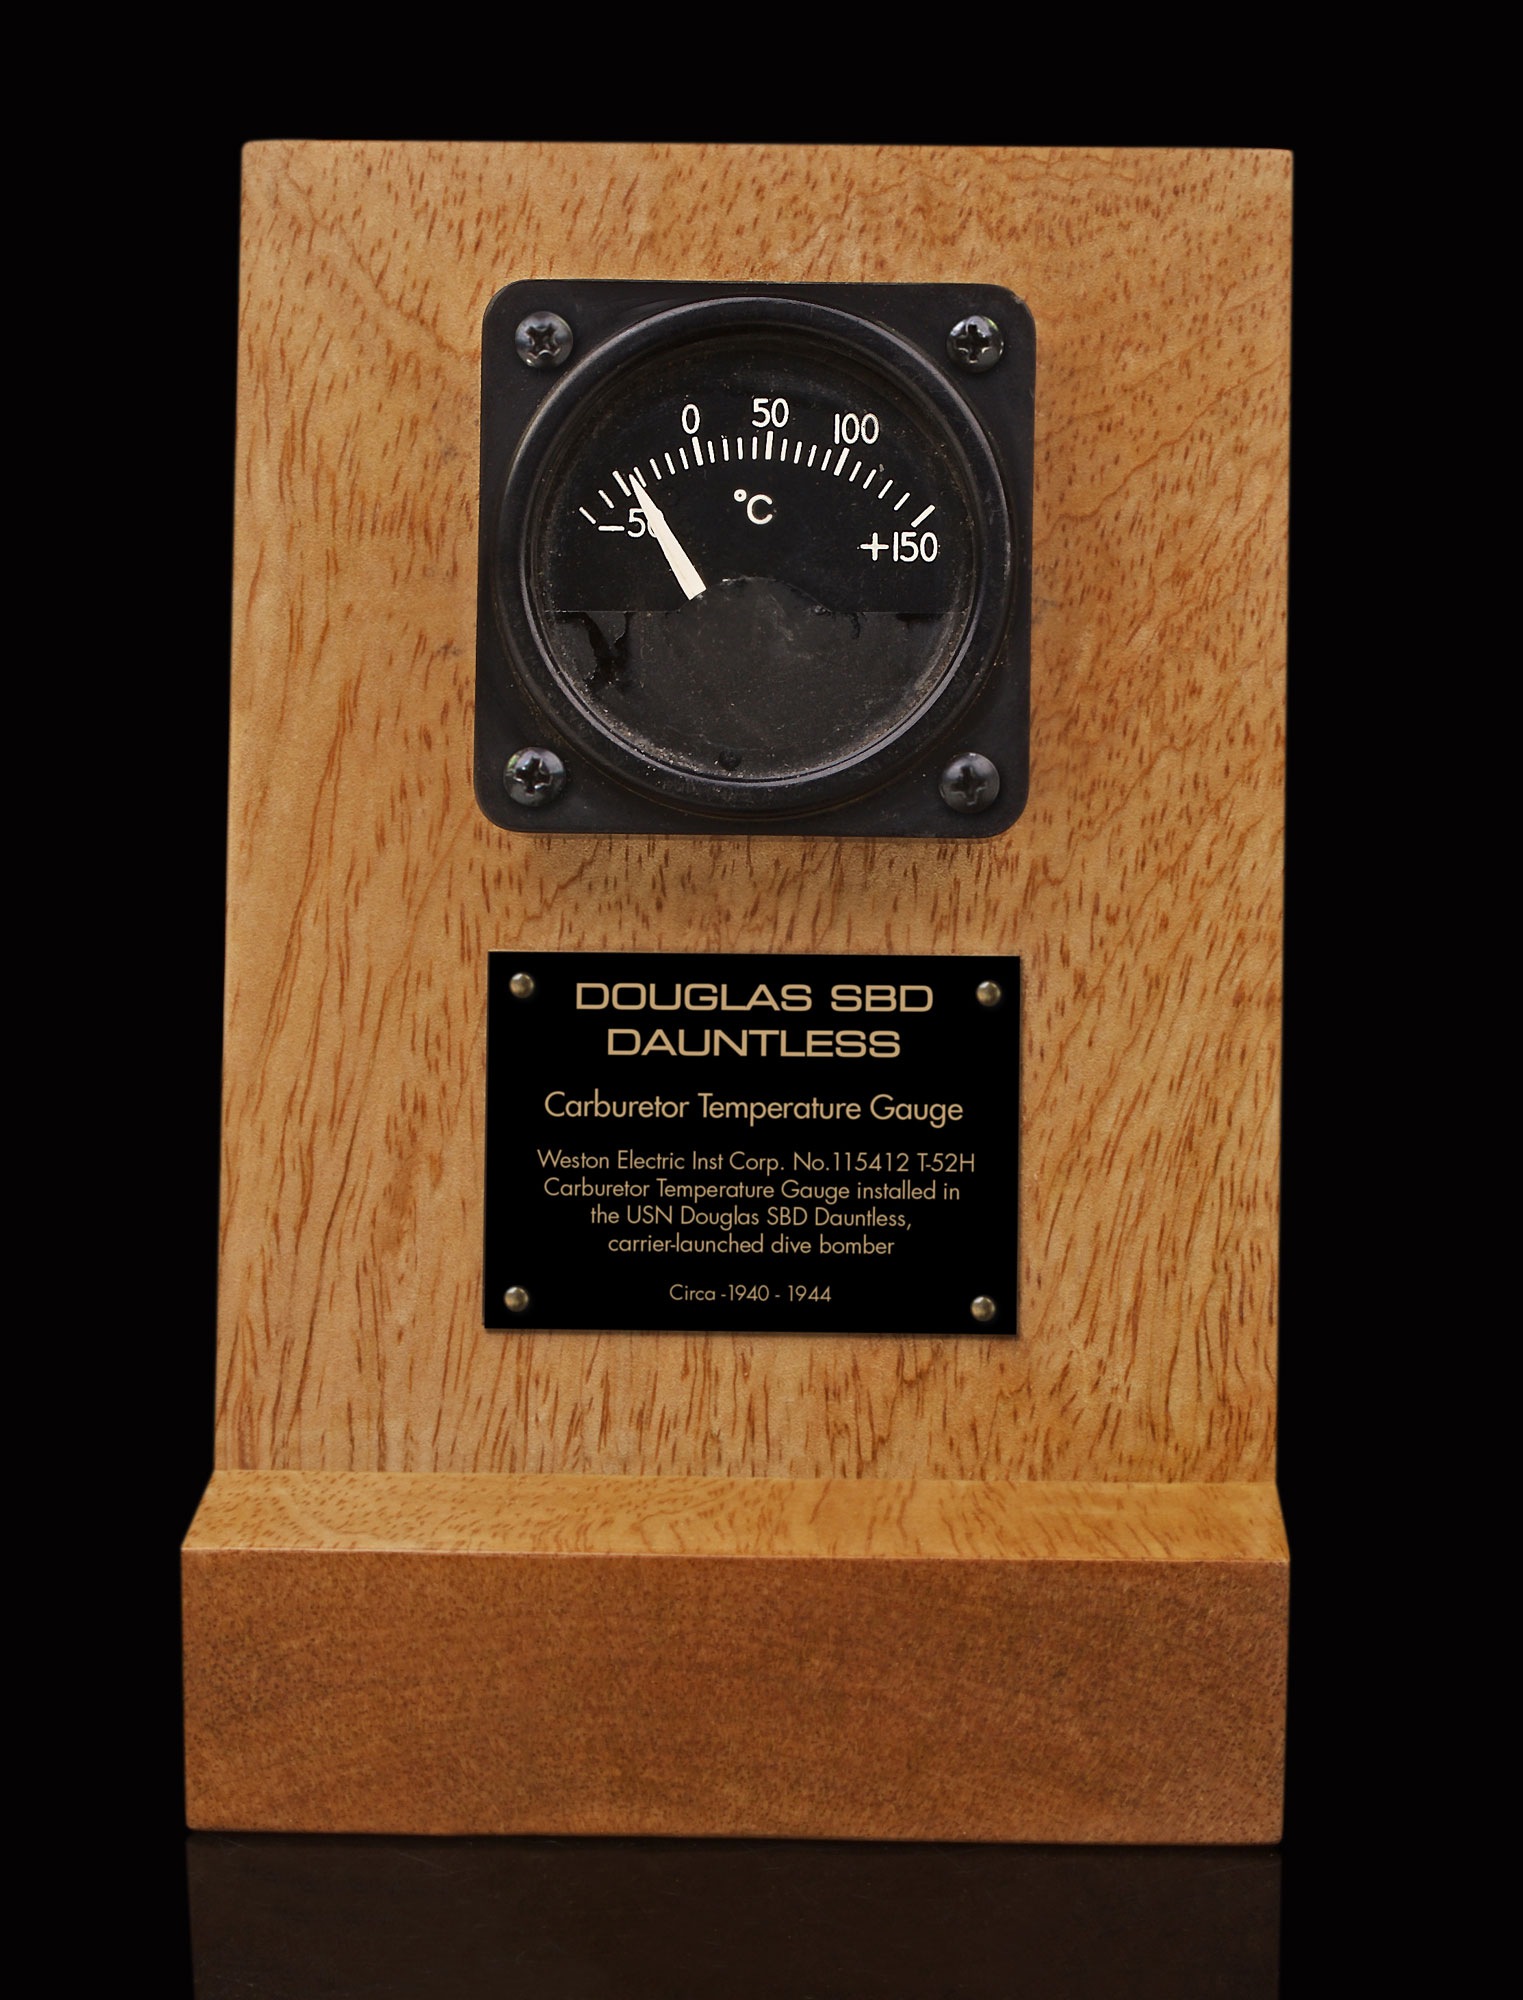 DOUGLAS SBD DAUNTLESS CARBURETOR TEMPERATURE GAUGE